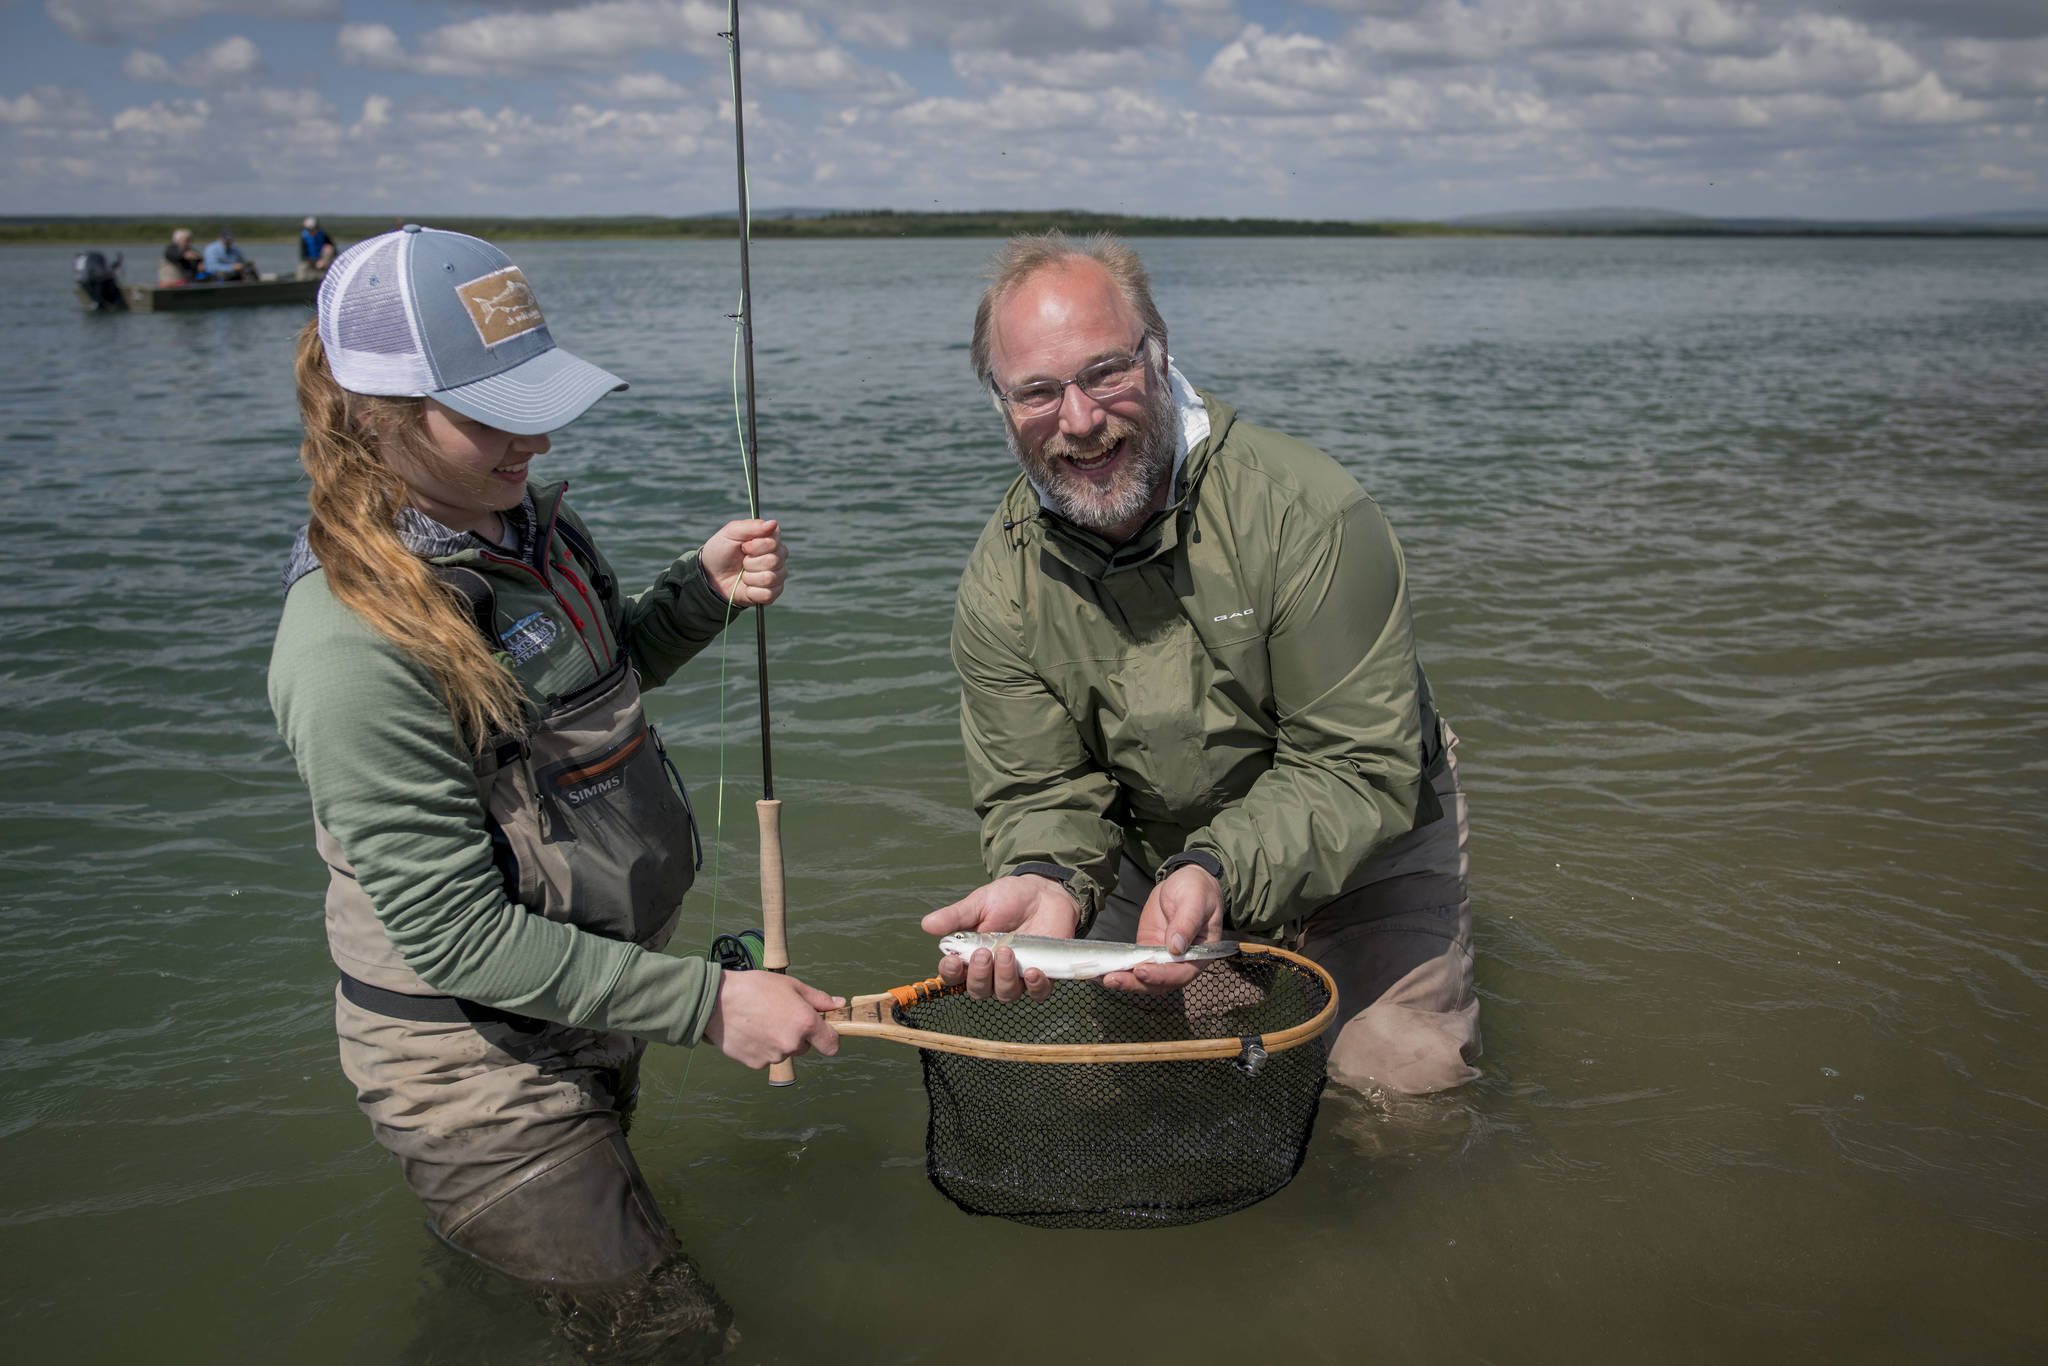 Abbey Whitcomb and her client, Naknek resident Bryon Singly, pose with a small rainbow on the Naknek River. (Courtesy Photo | Sarah Miller)